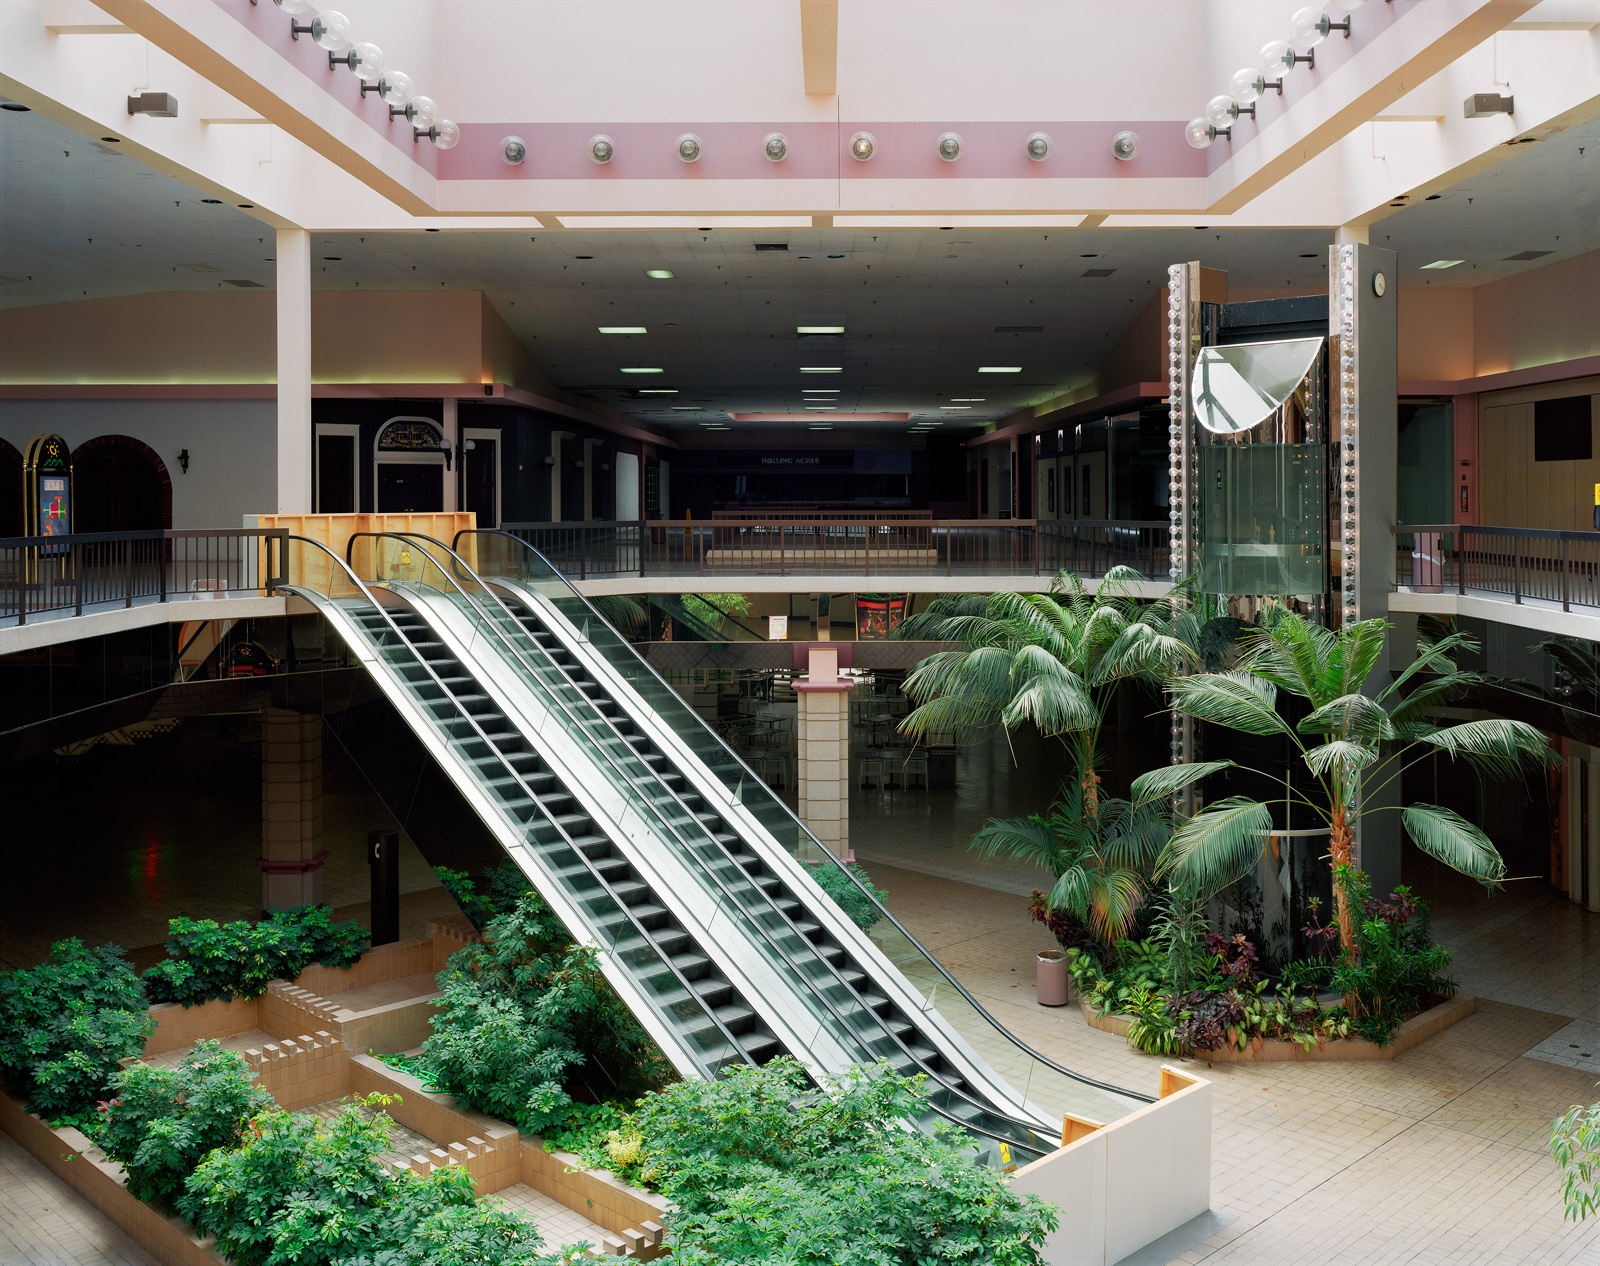 Rolling Acres Mall, 2008. © Brian Ulrich